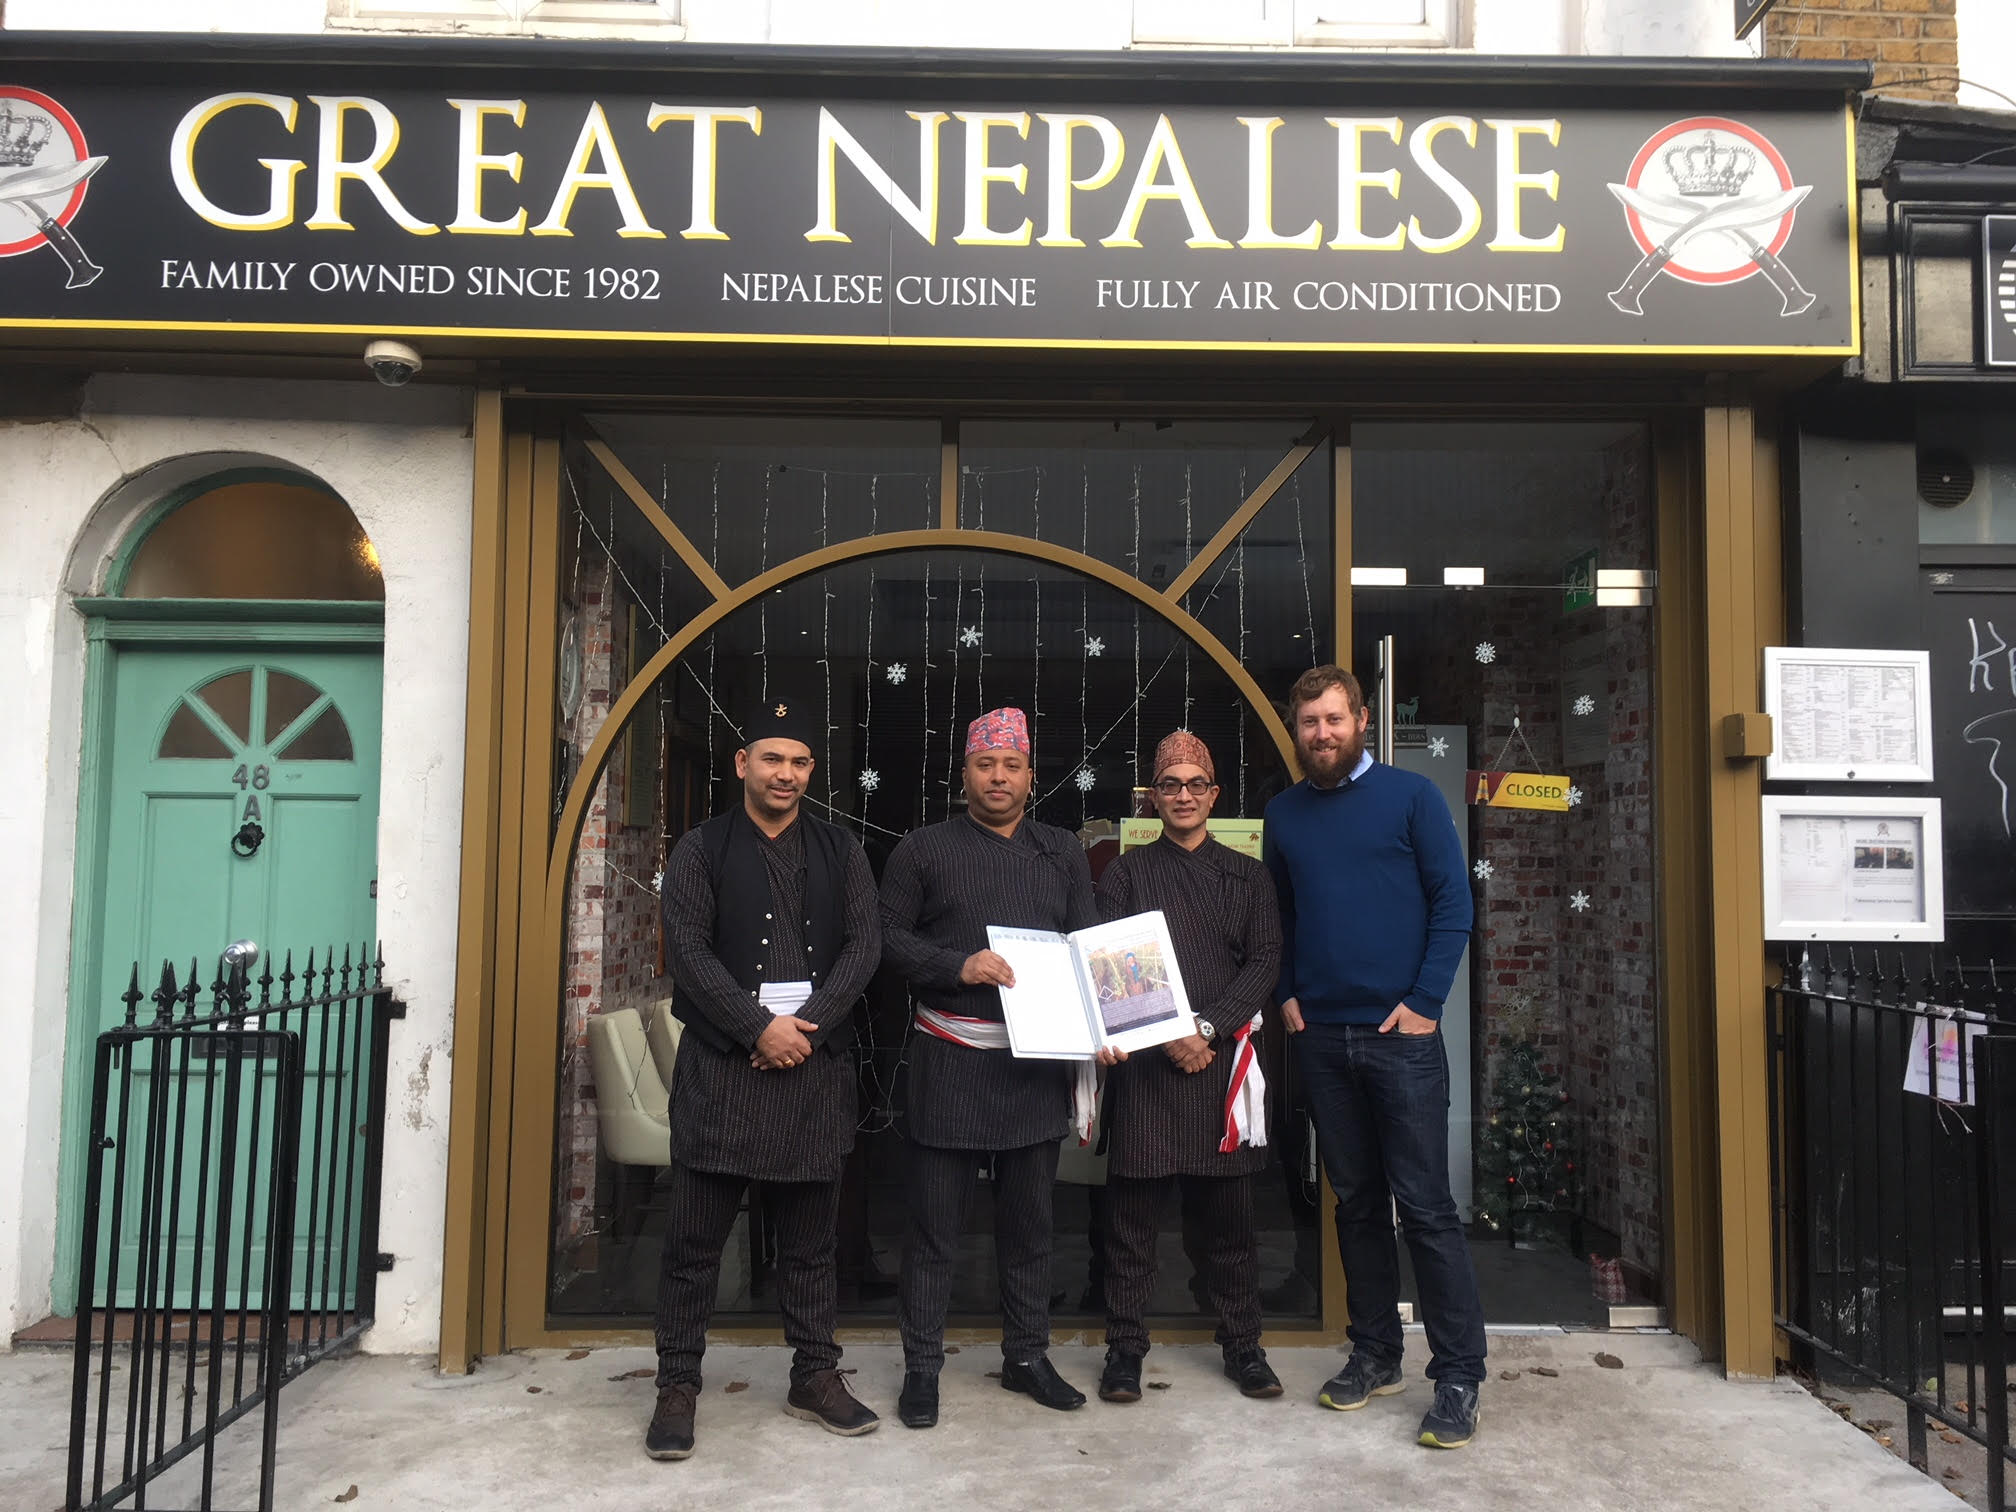 From left to right: Kiran, Baz and Jitendra Manandhar with TGT Co-Director Morgan Phillips at The Great Nepalese Restaurant.